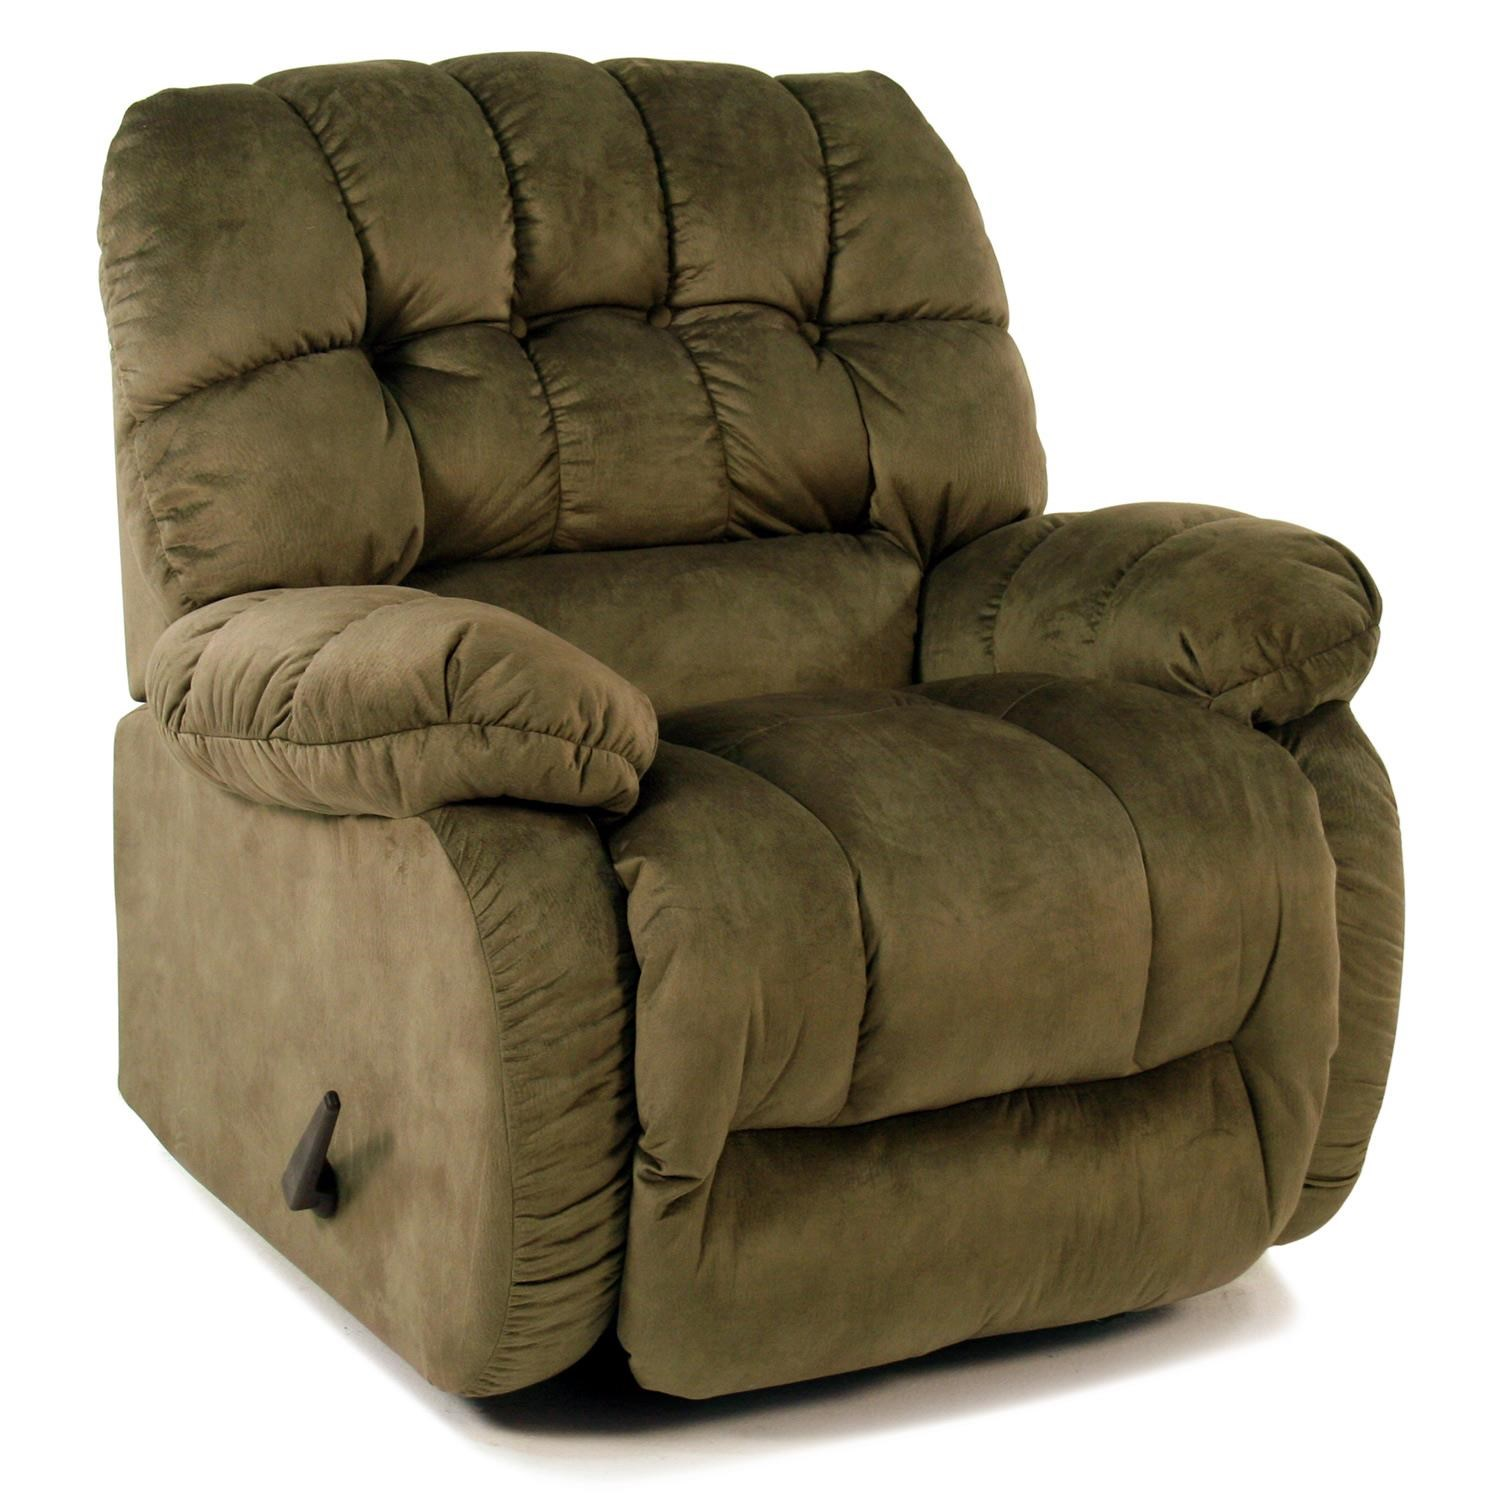 Best Home Furnishings The Beast XL Rocker Recliner   Item Number:  9B27 22119